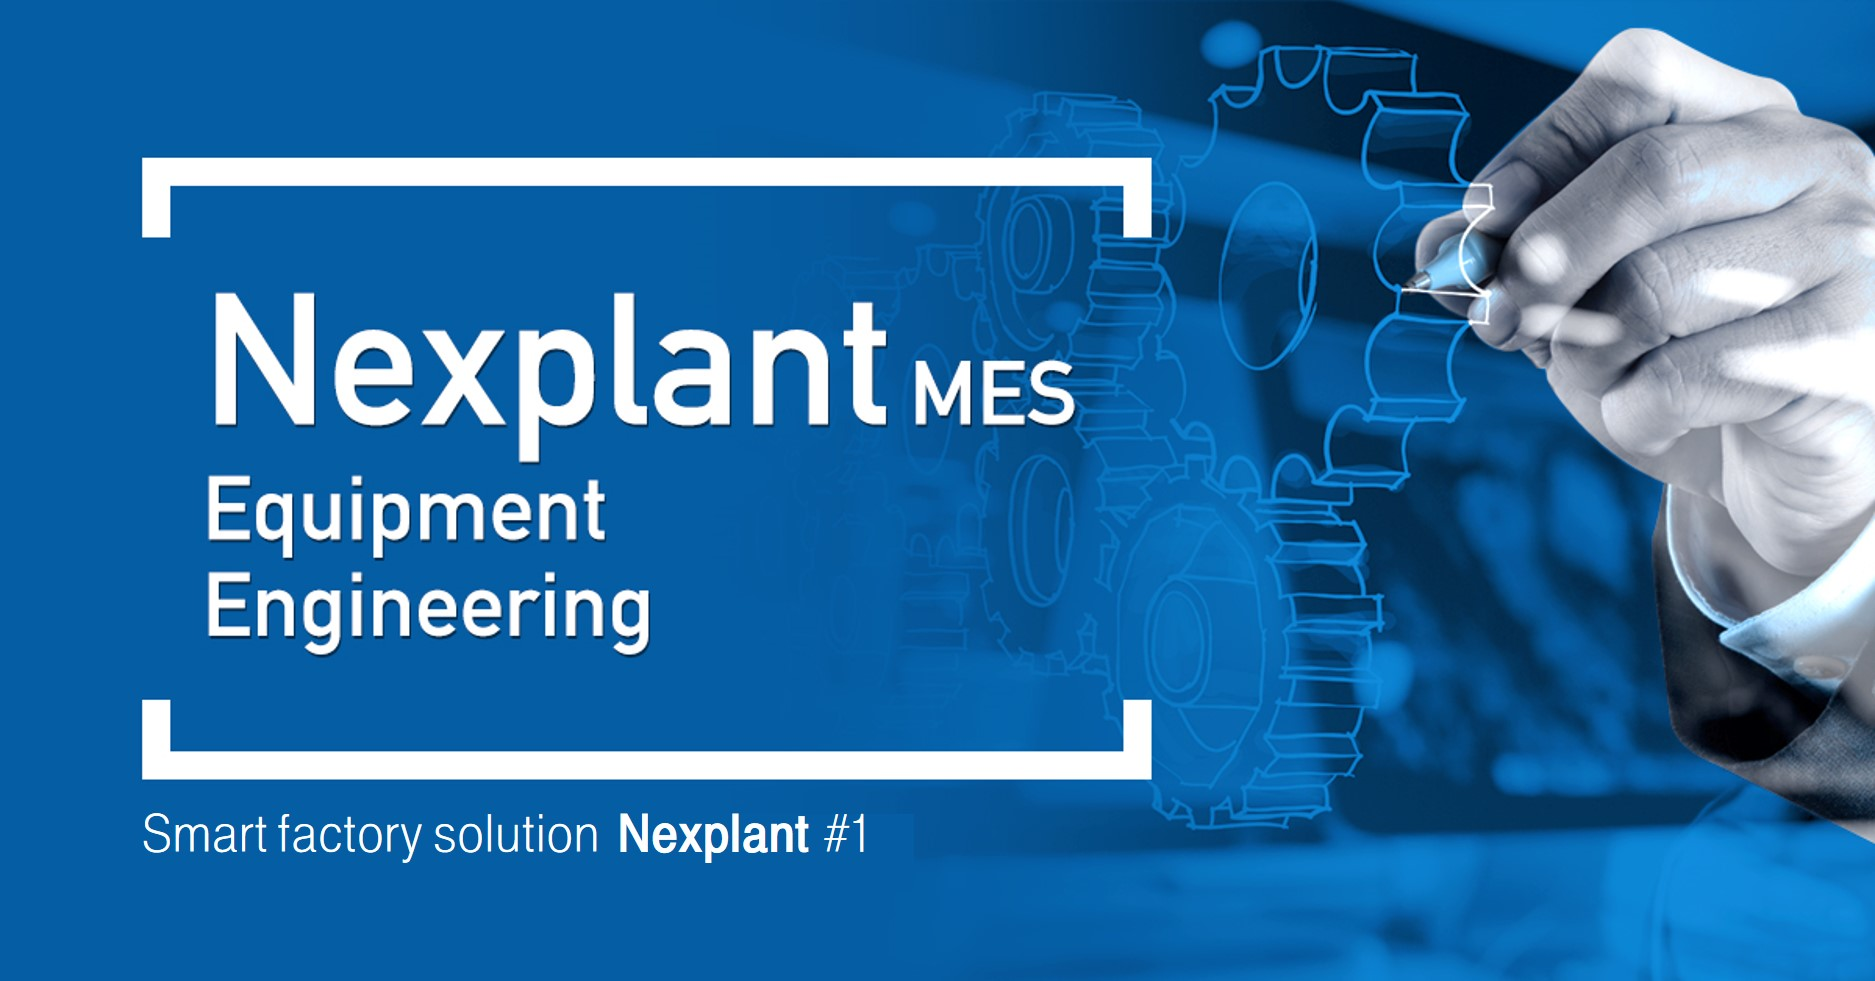 Nexplant MES Equipment Engineering